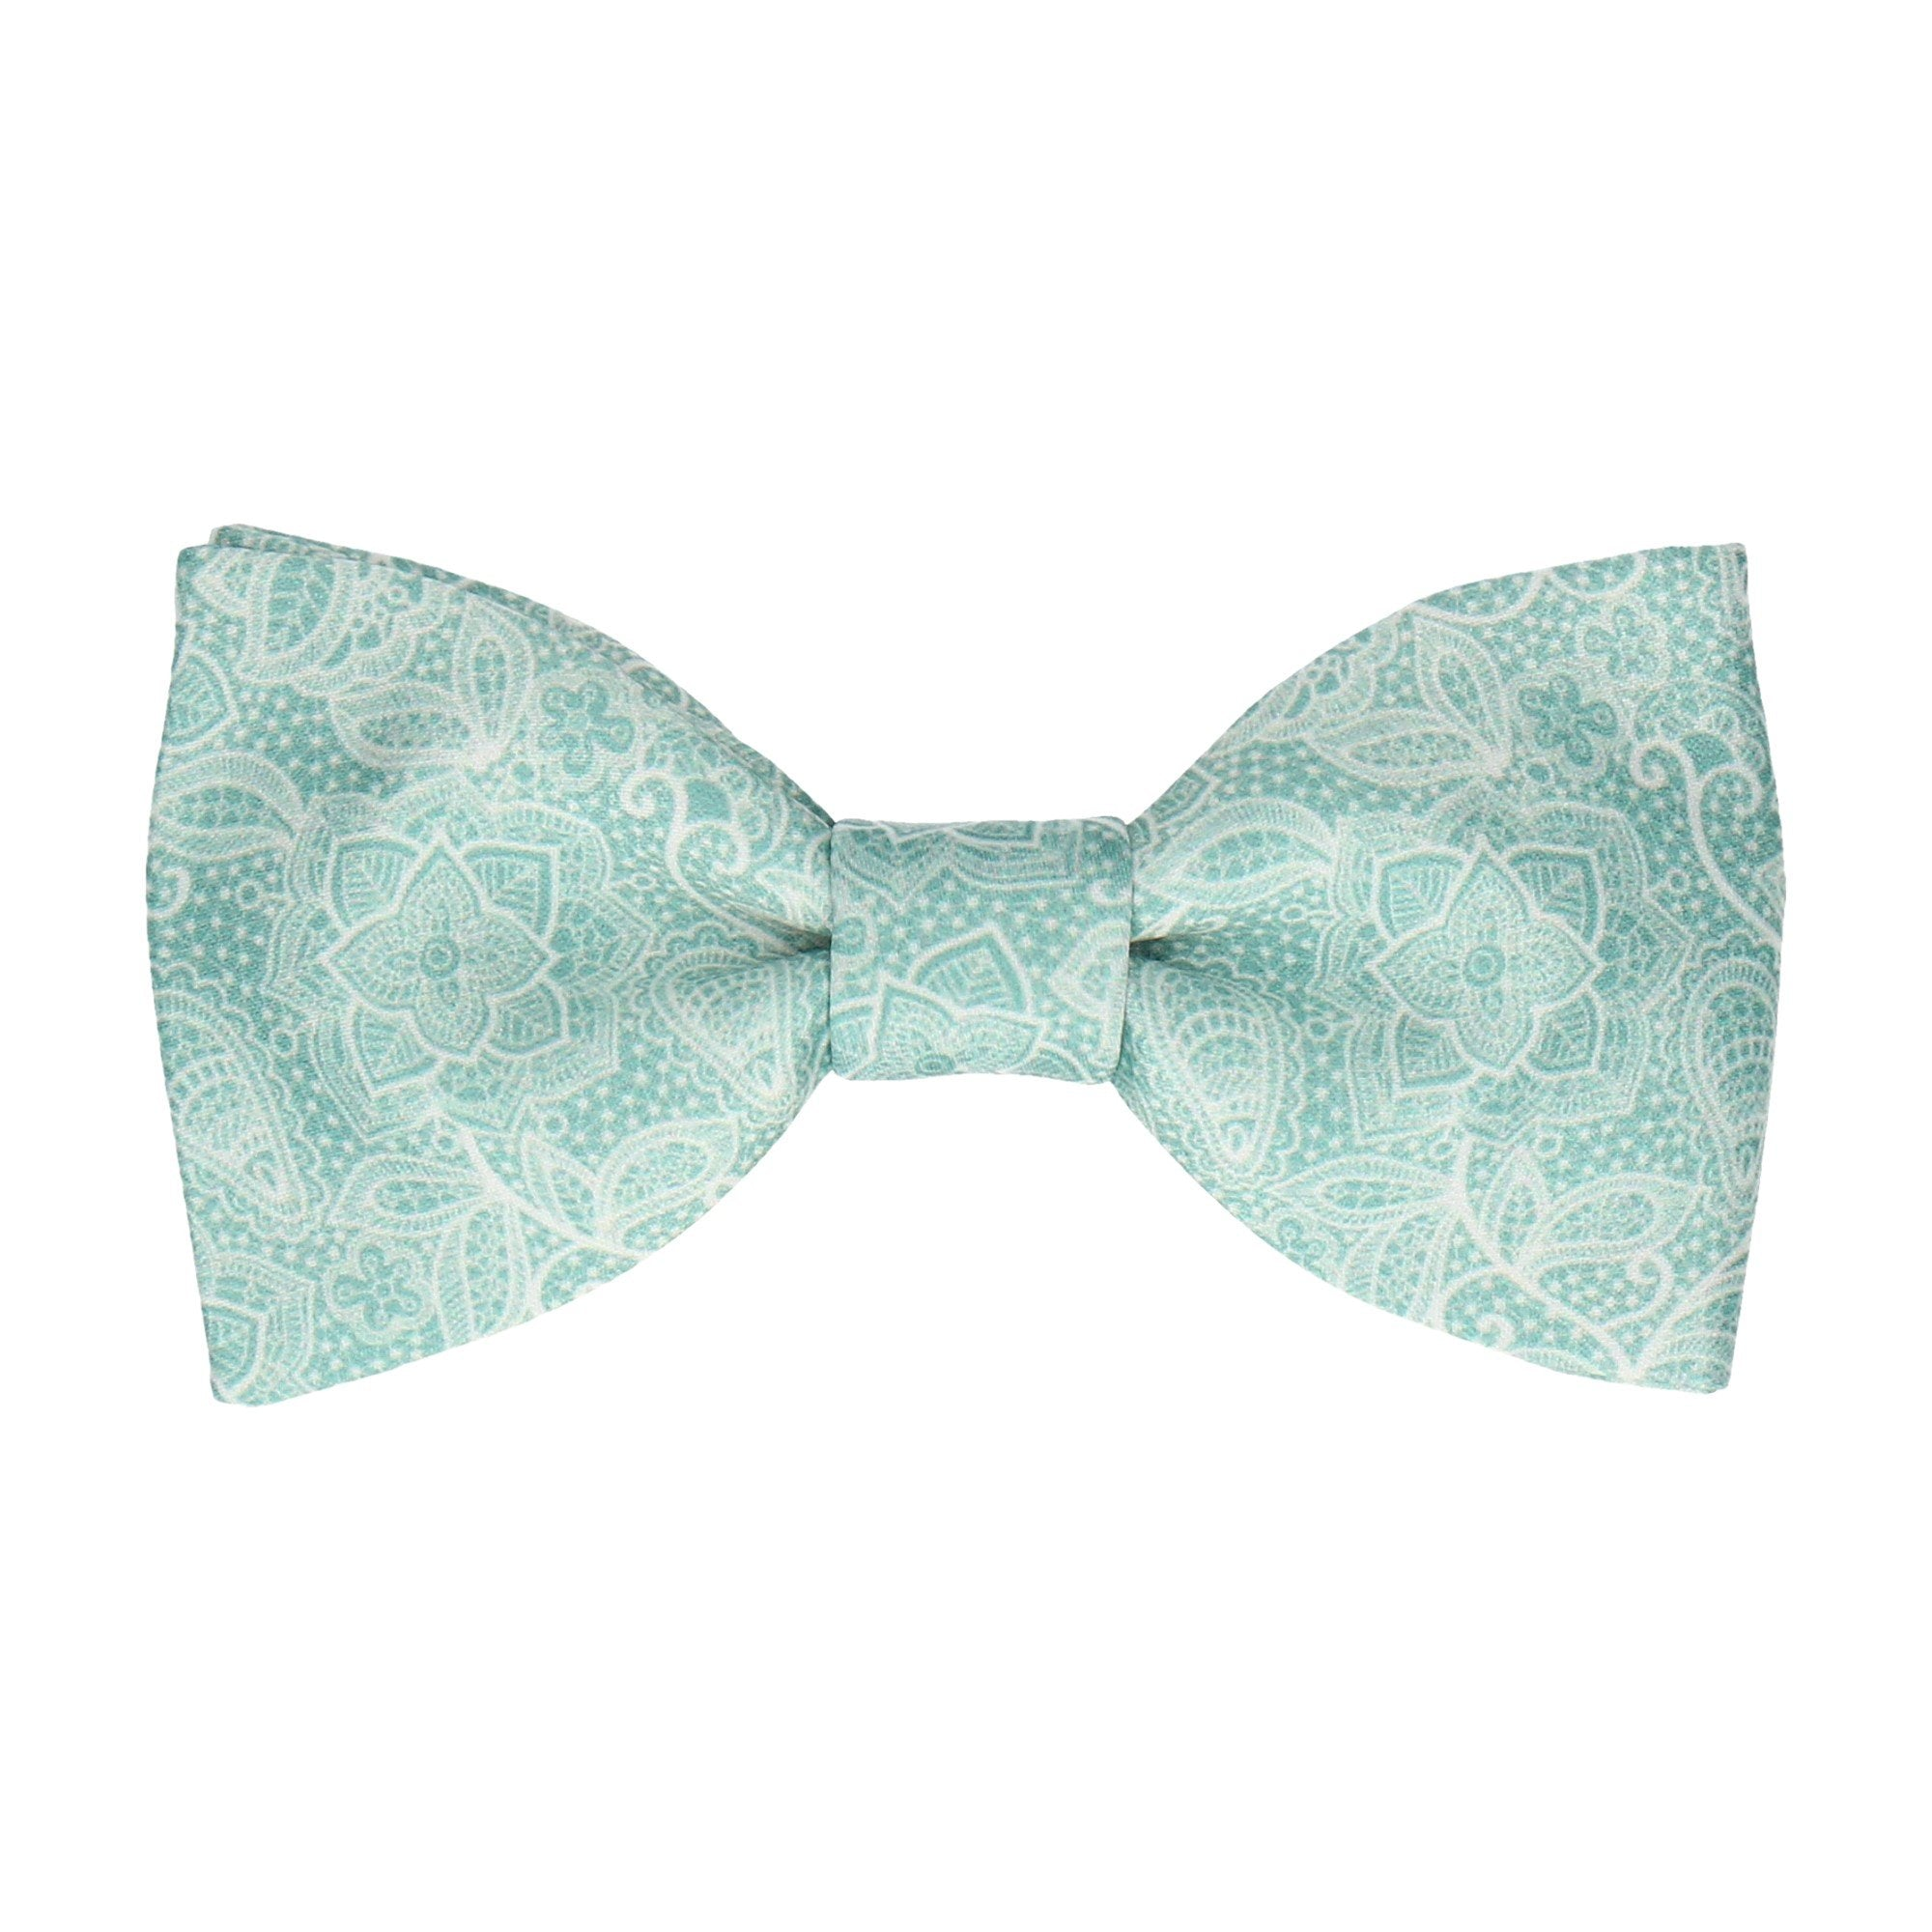 Intricate Green Floral Lace Print Bow Tie